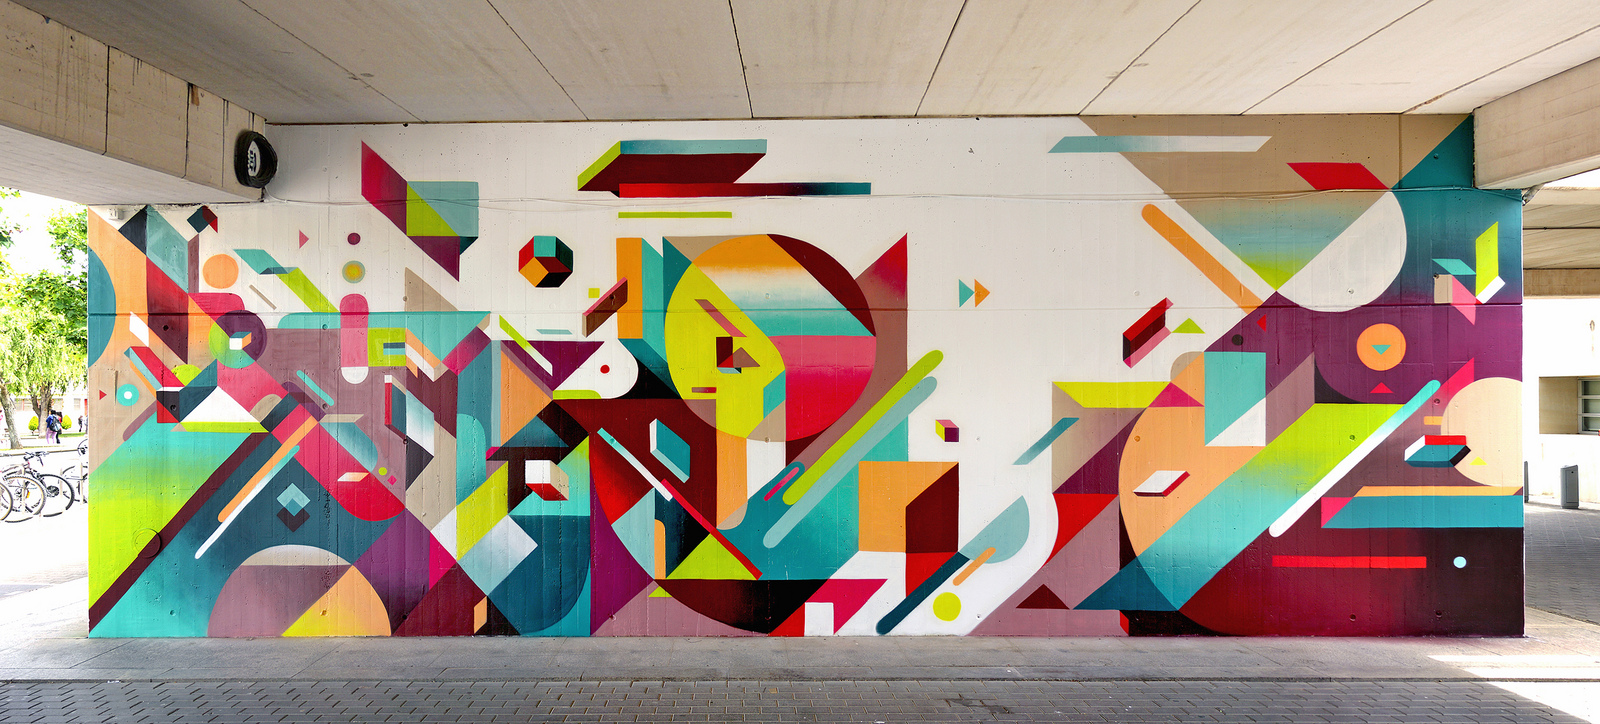 Nelio new mural in valencia spain streetartnews for Abstract mural art